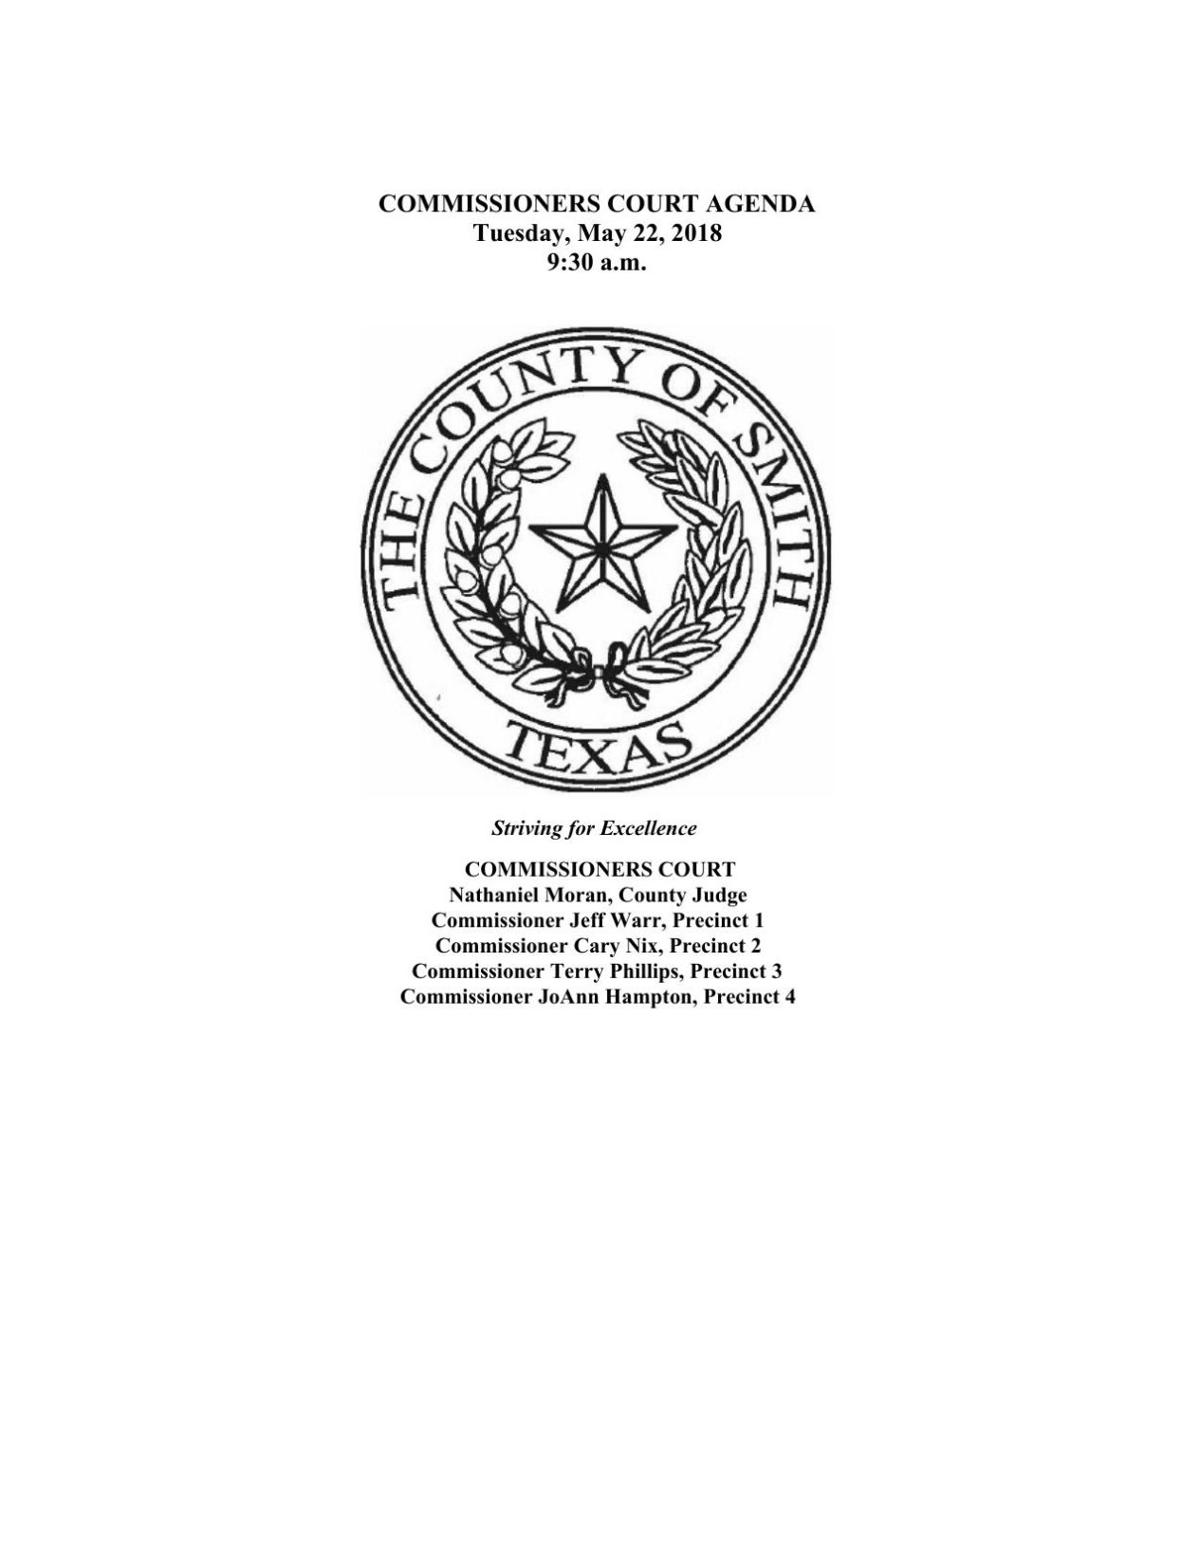 Smith County Commissioners Court Agenda - May 22, 2018